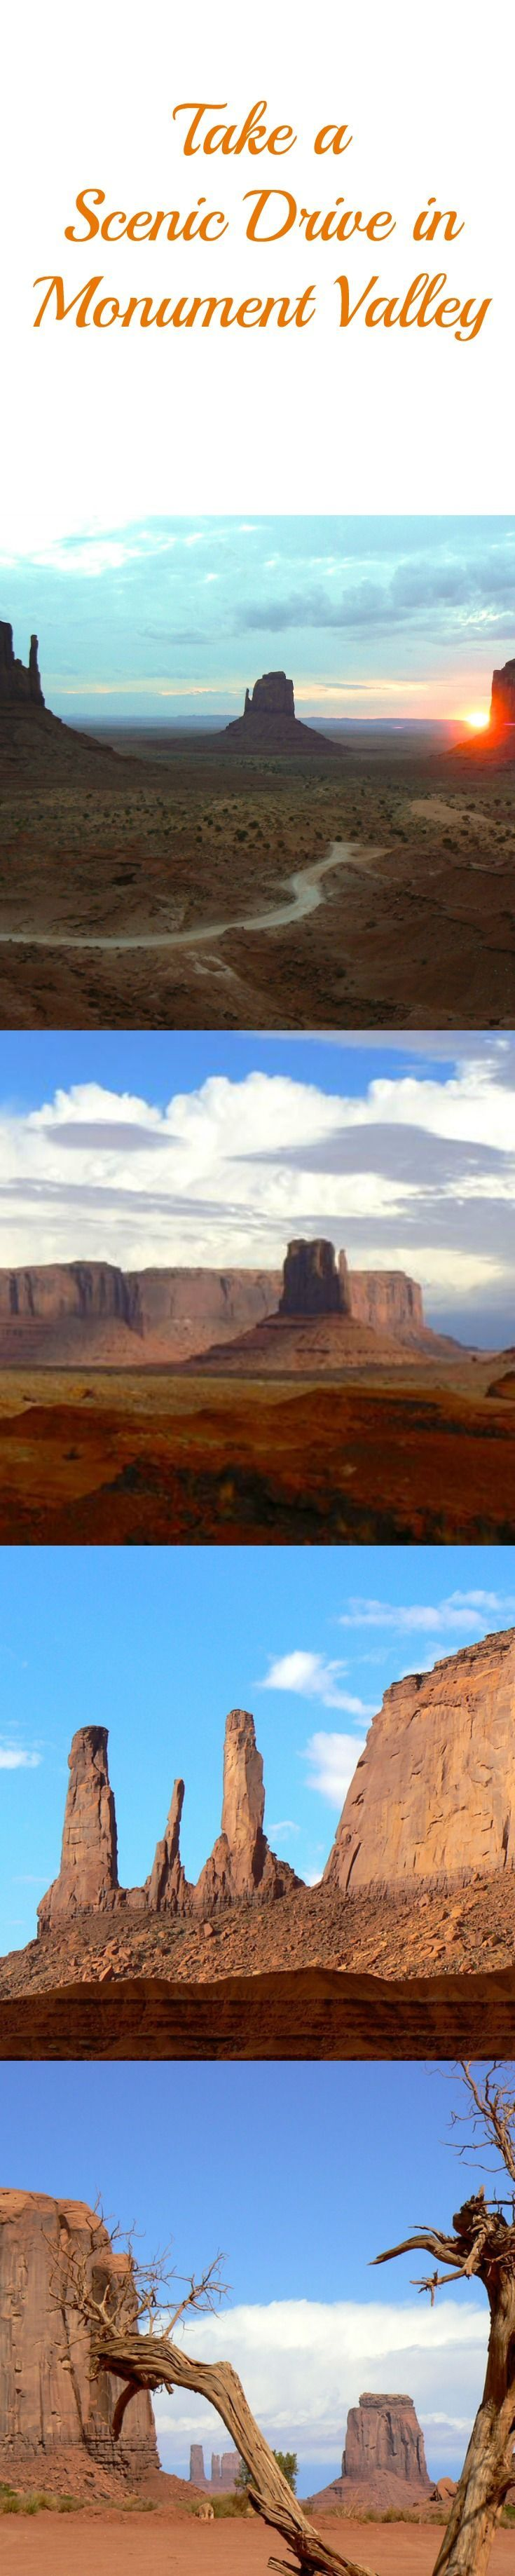 Take a scenic drive in Monument Valley